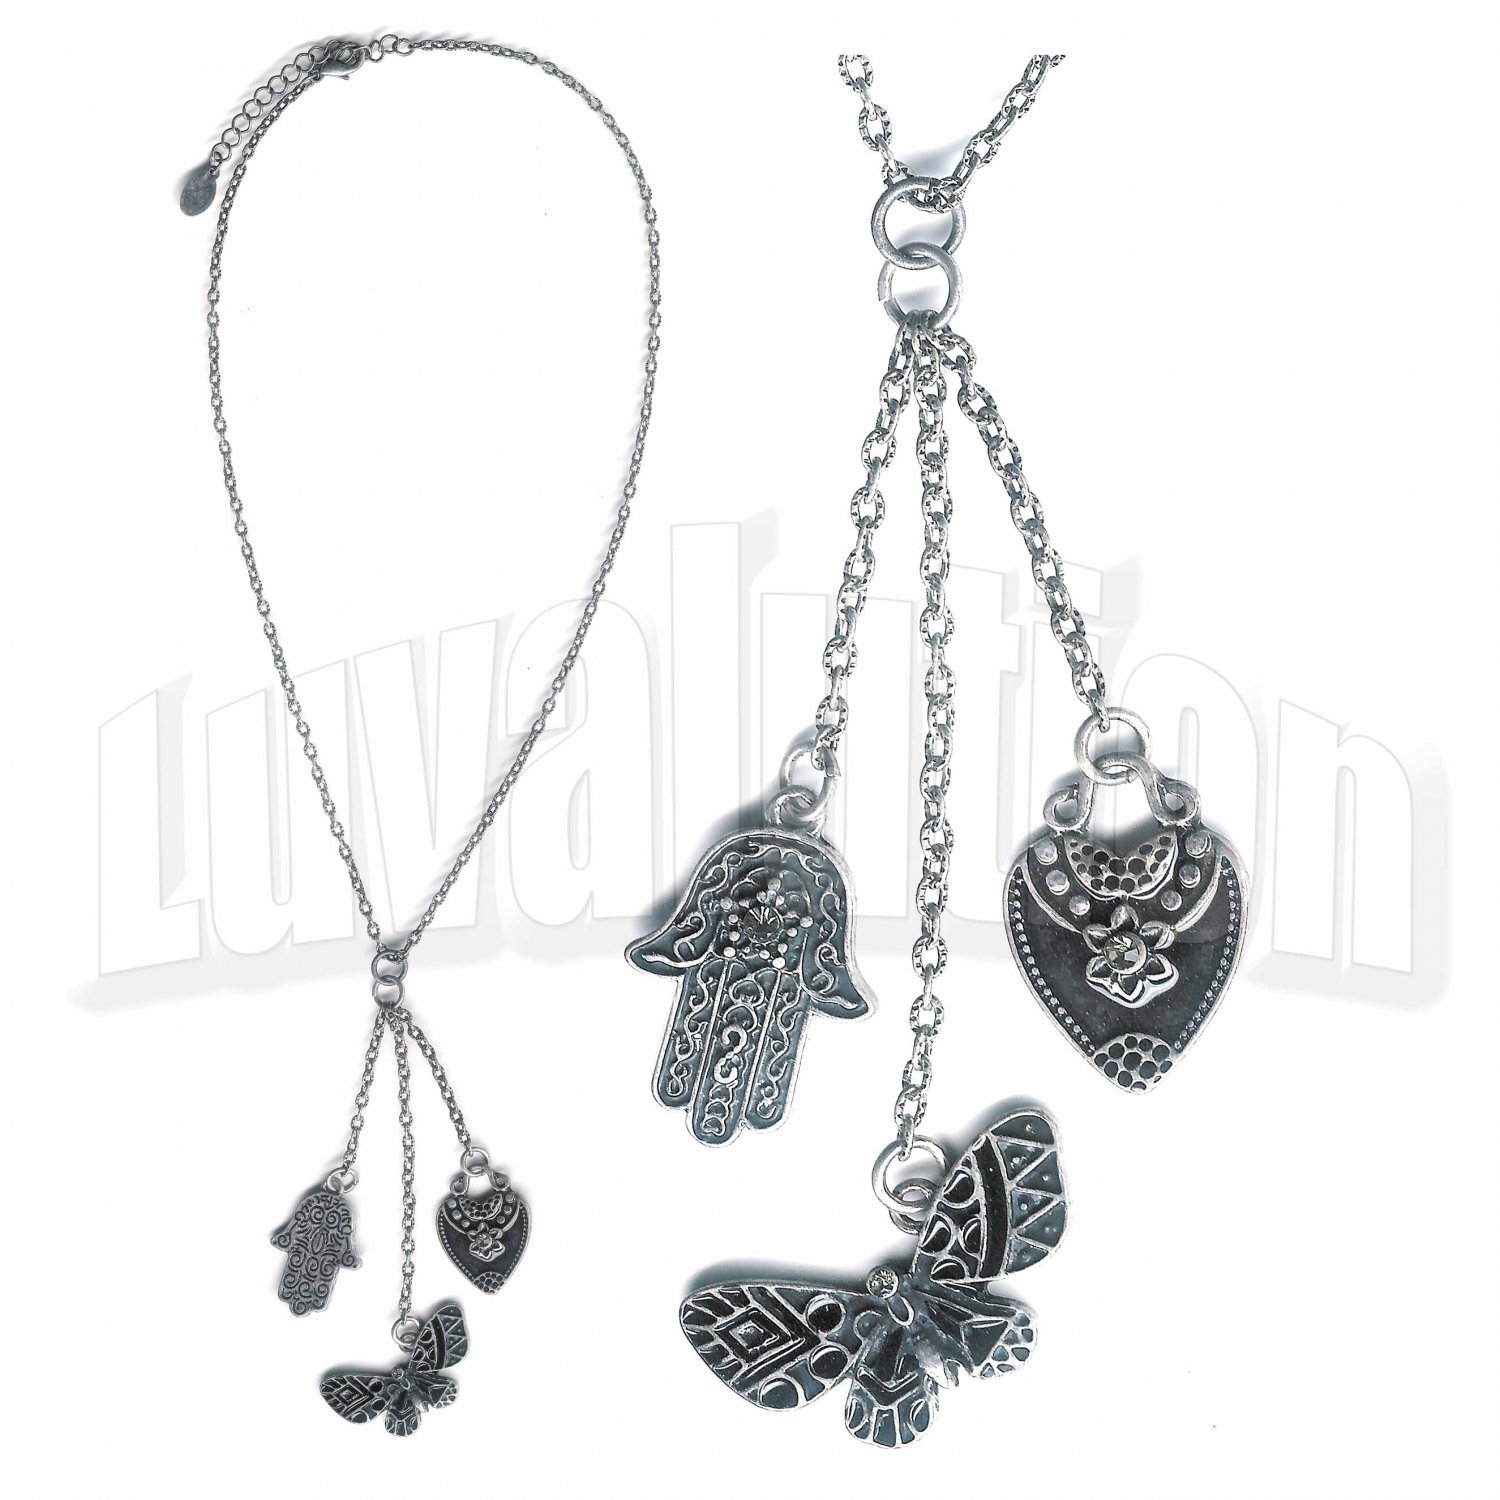 Catalog Product moreover Surgical Instruments Manufacturer Delmaks Surgico 1911383 as well Index moreover Product product id 2425 together with Hamsa Hand Heart Butterfly Rhinestone 3. on entertainment center hardware